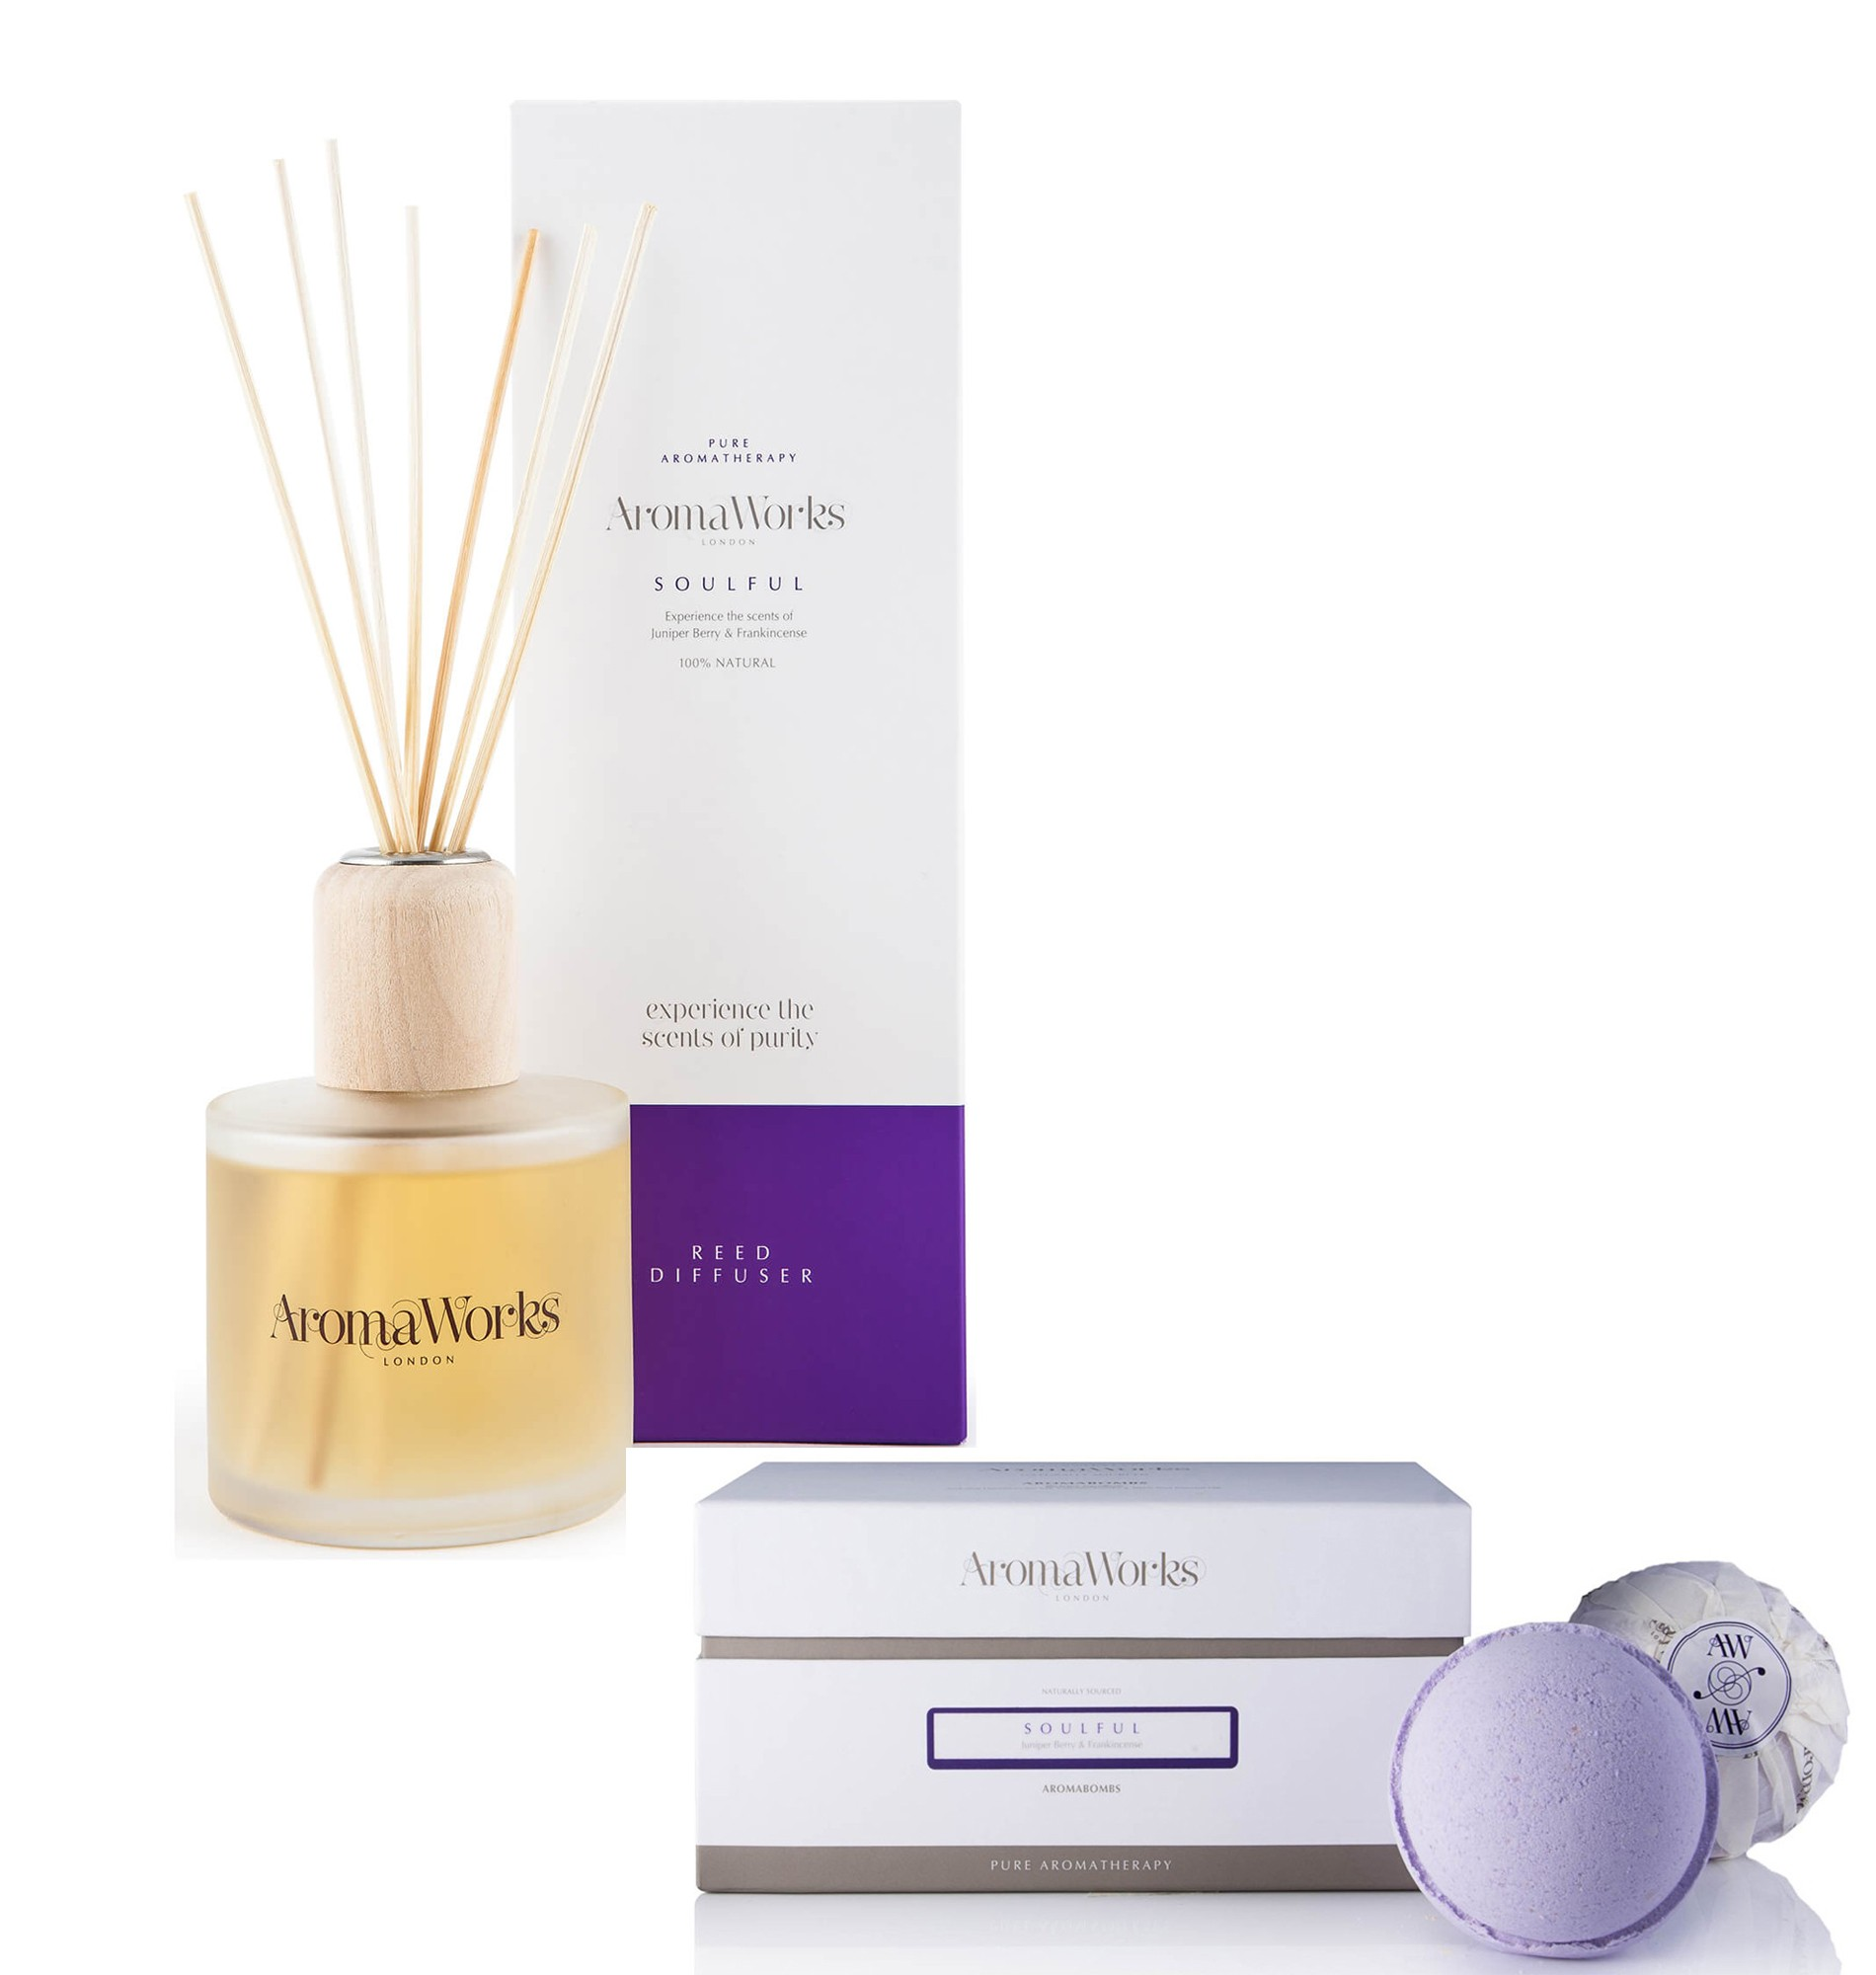 Aromaworks Soulful Reed Diffuser & Bombs Set